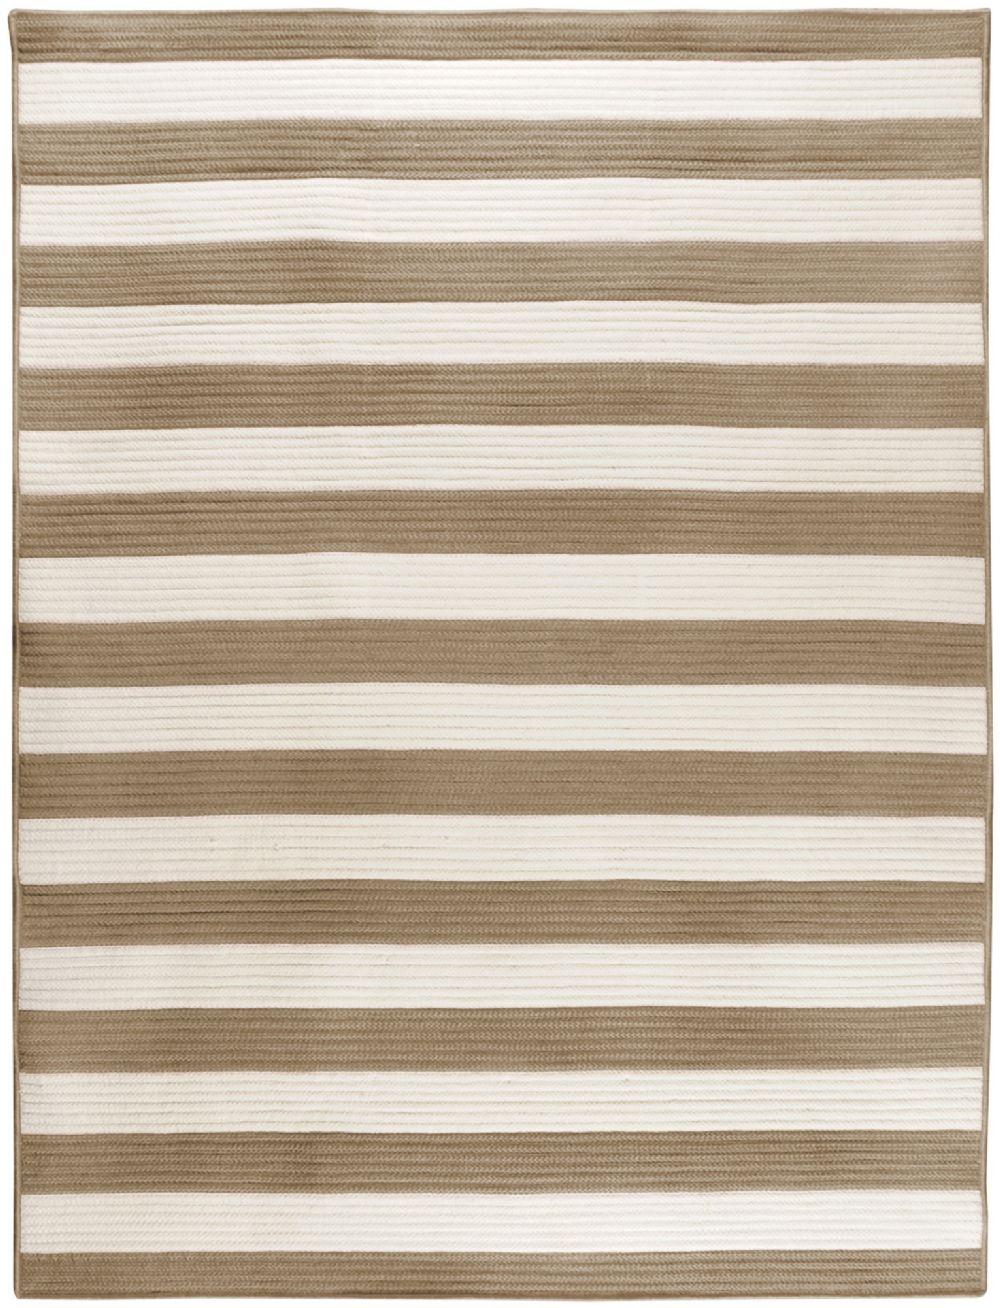 surya westport solid/striped area rug collection